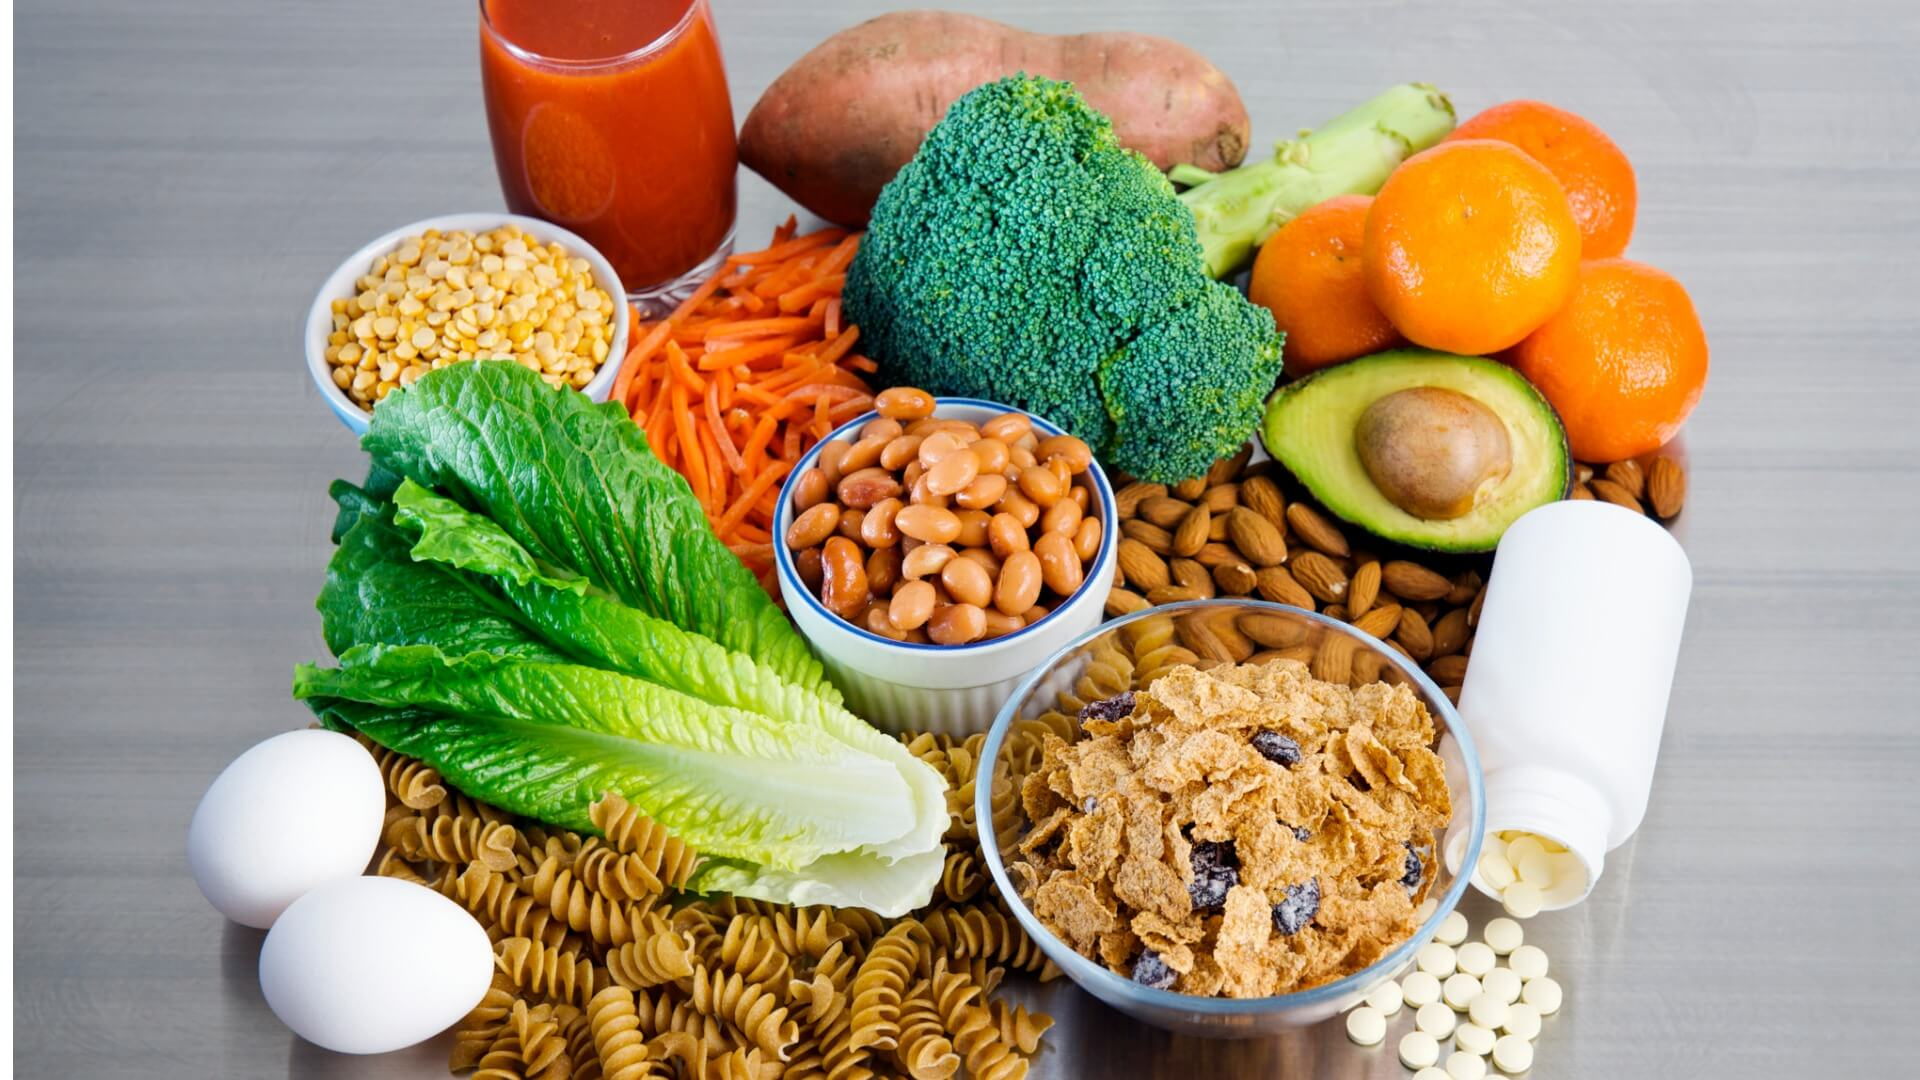 An arrangement of foods high in folate including pasta, broccoli, eggs, avocado, and a bottle of supplements